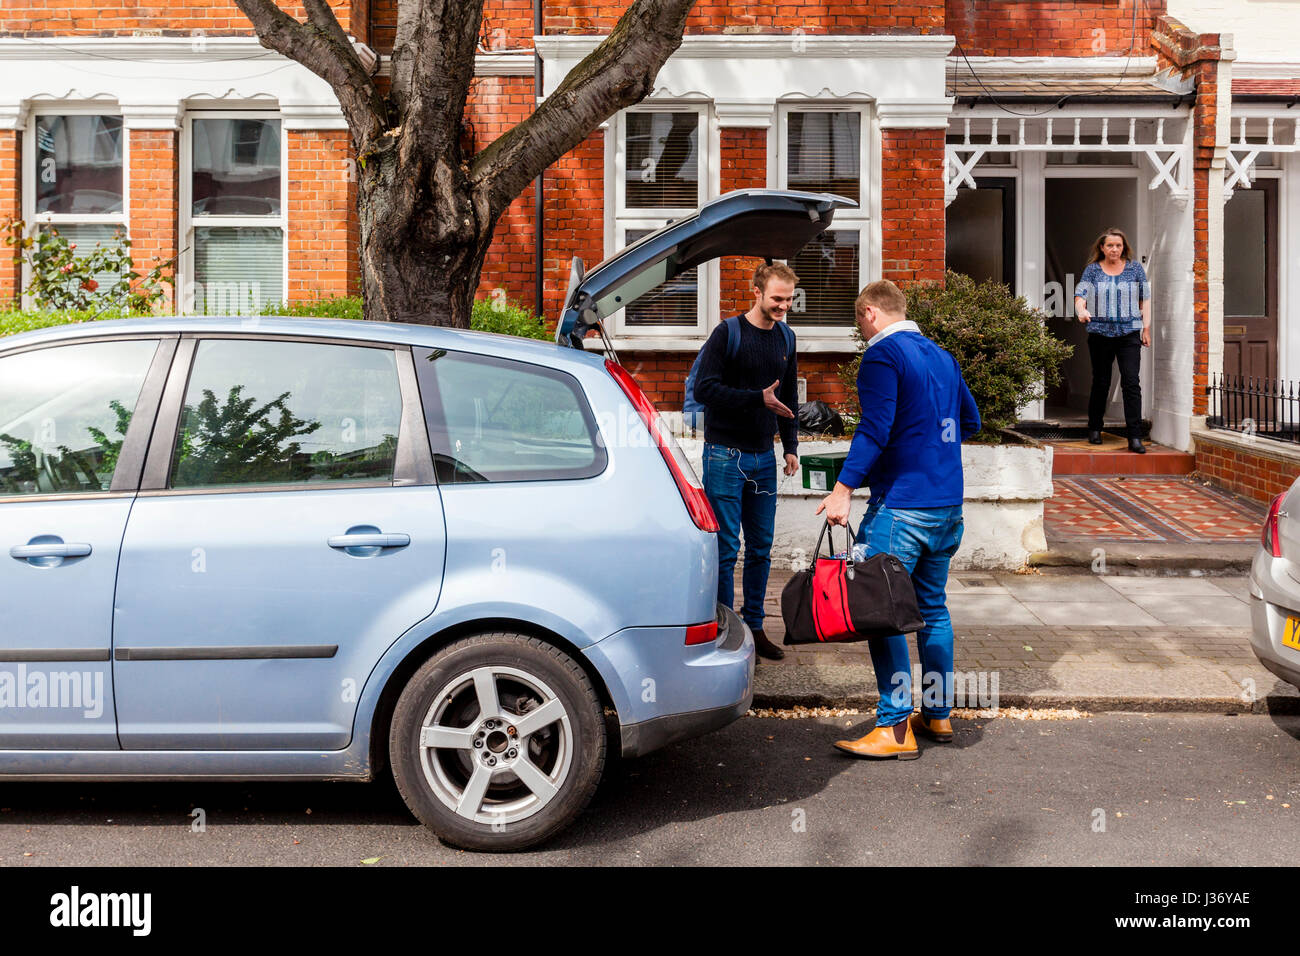 A Young Man Welcoming His New Neighbour, London, England - Stock Image